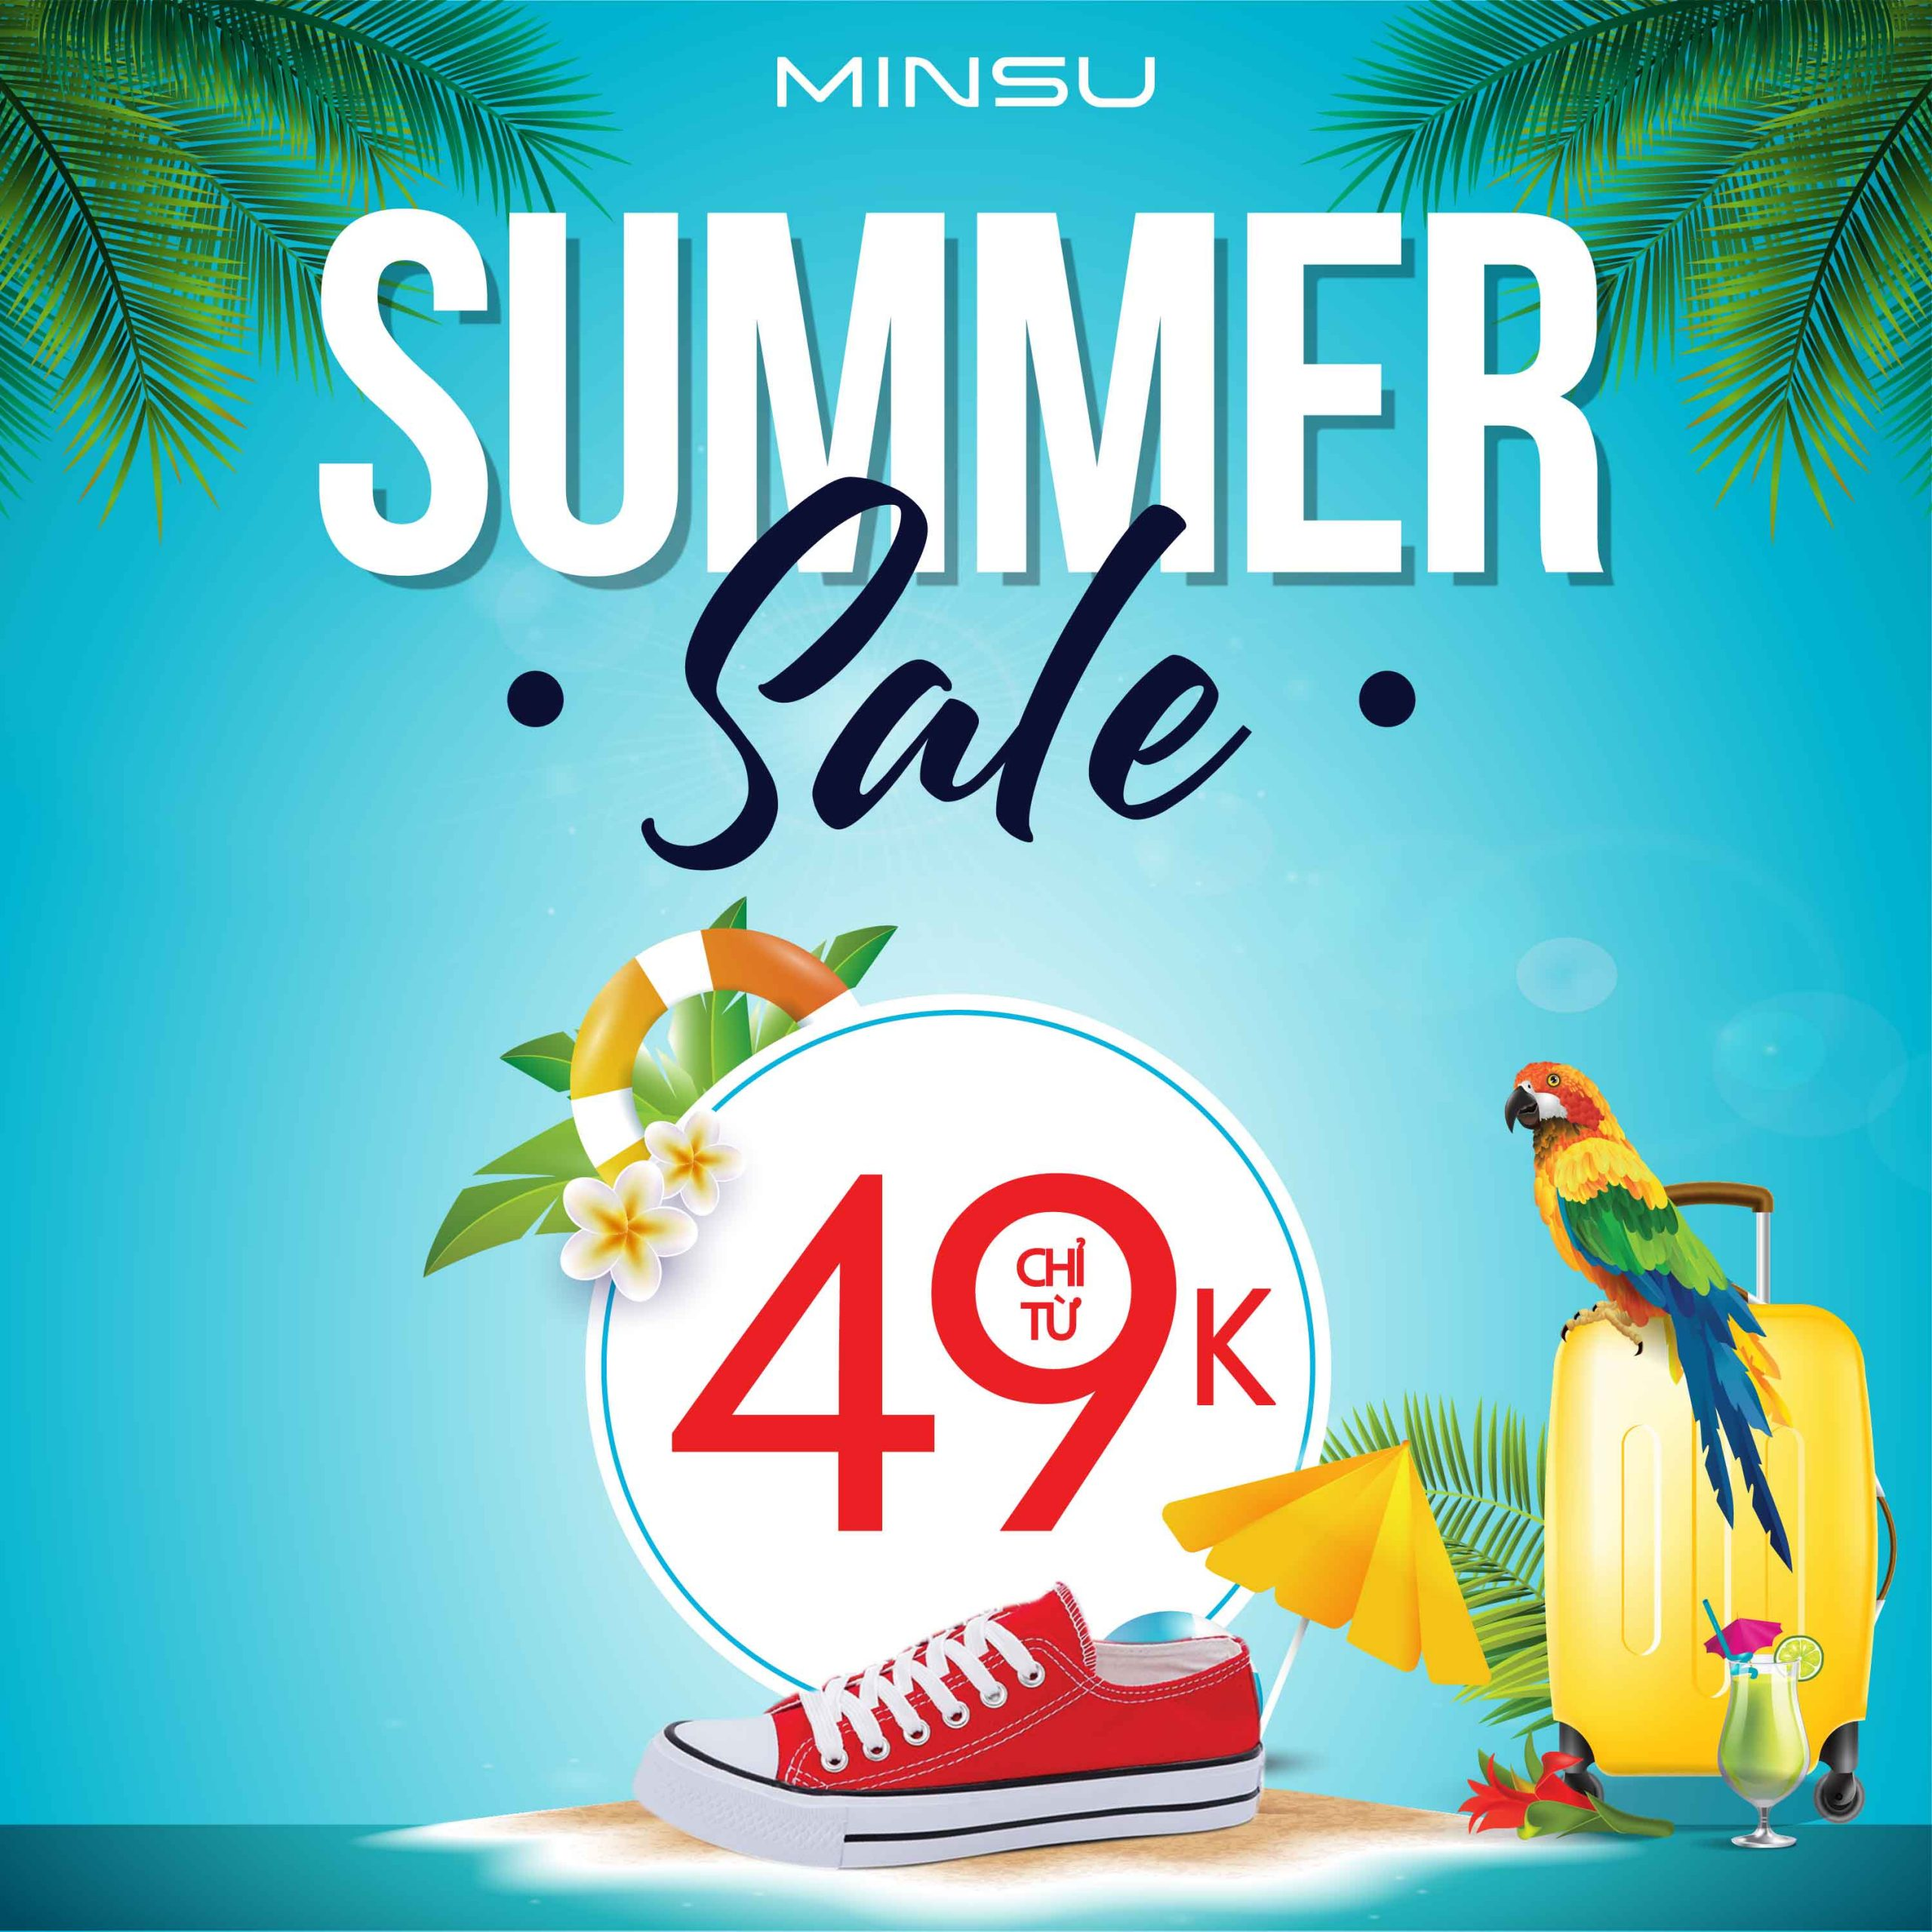 Summer sale giày thể thao